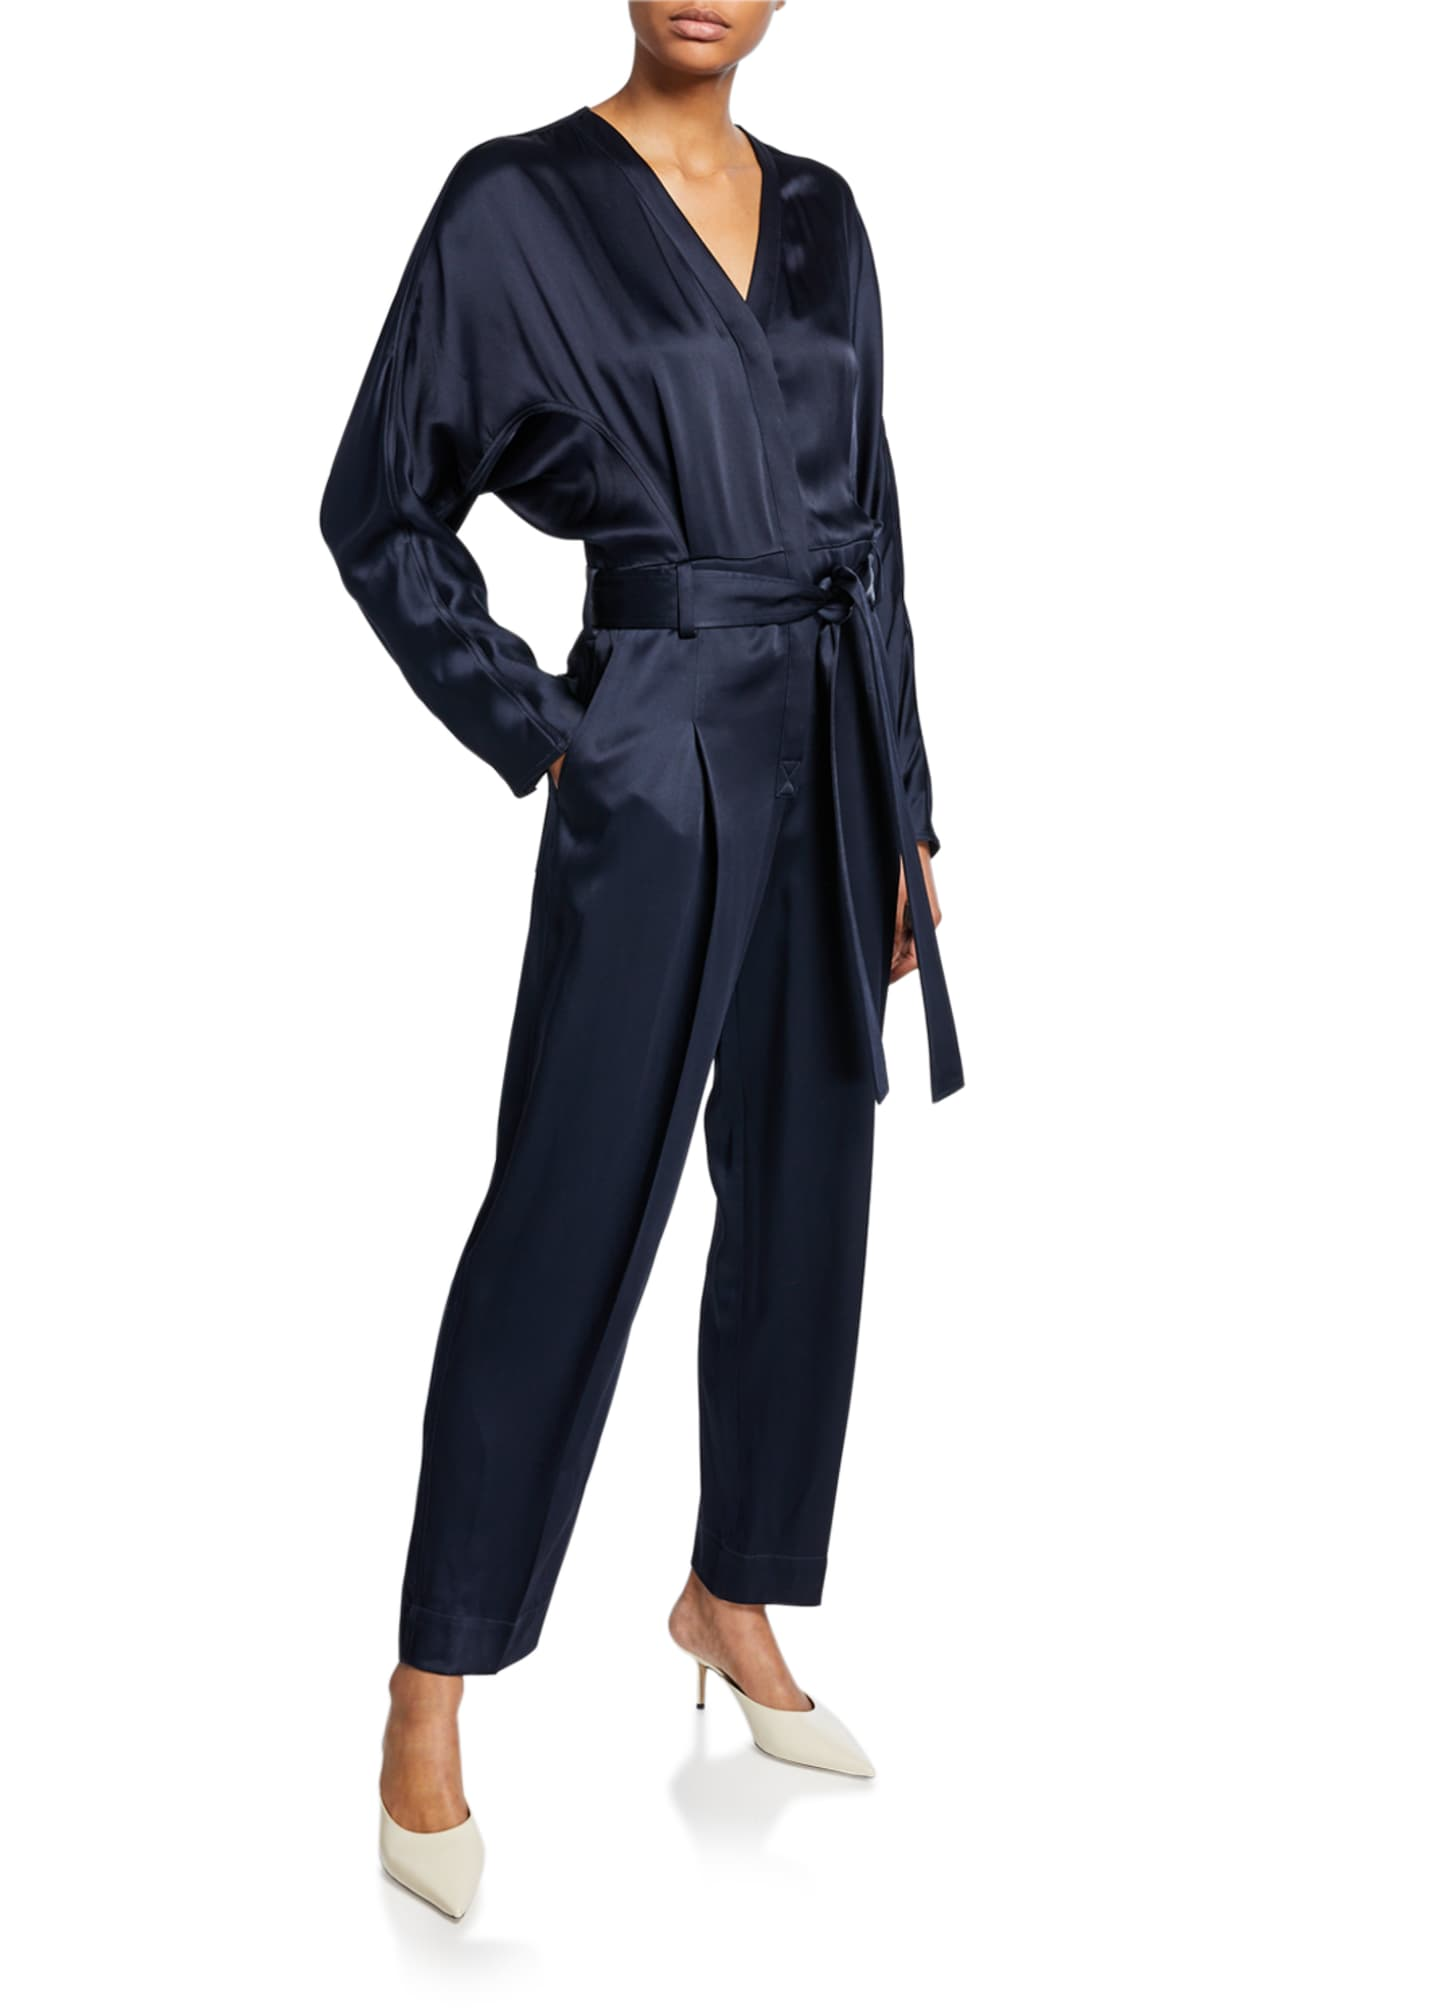 3.1 Phillip Lim Satin Menswear Belted Jumpsuit